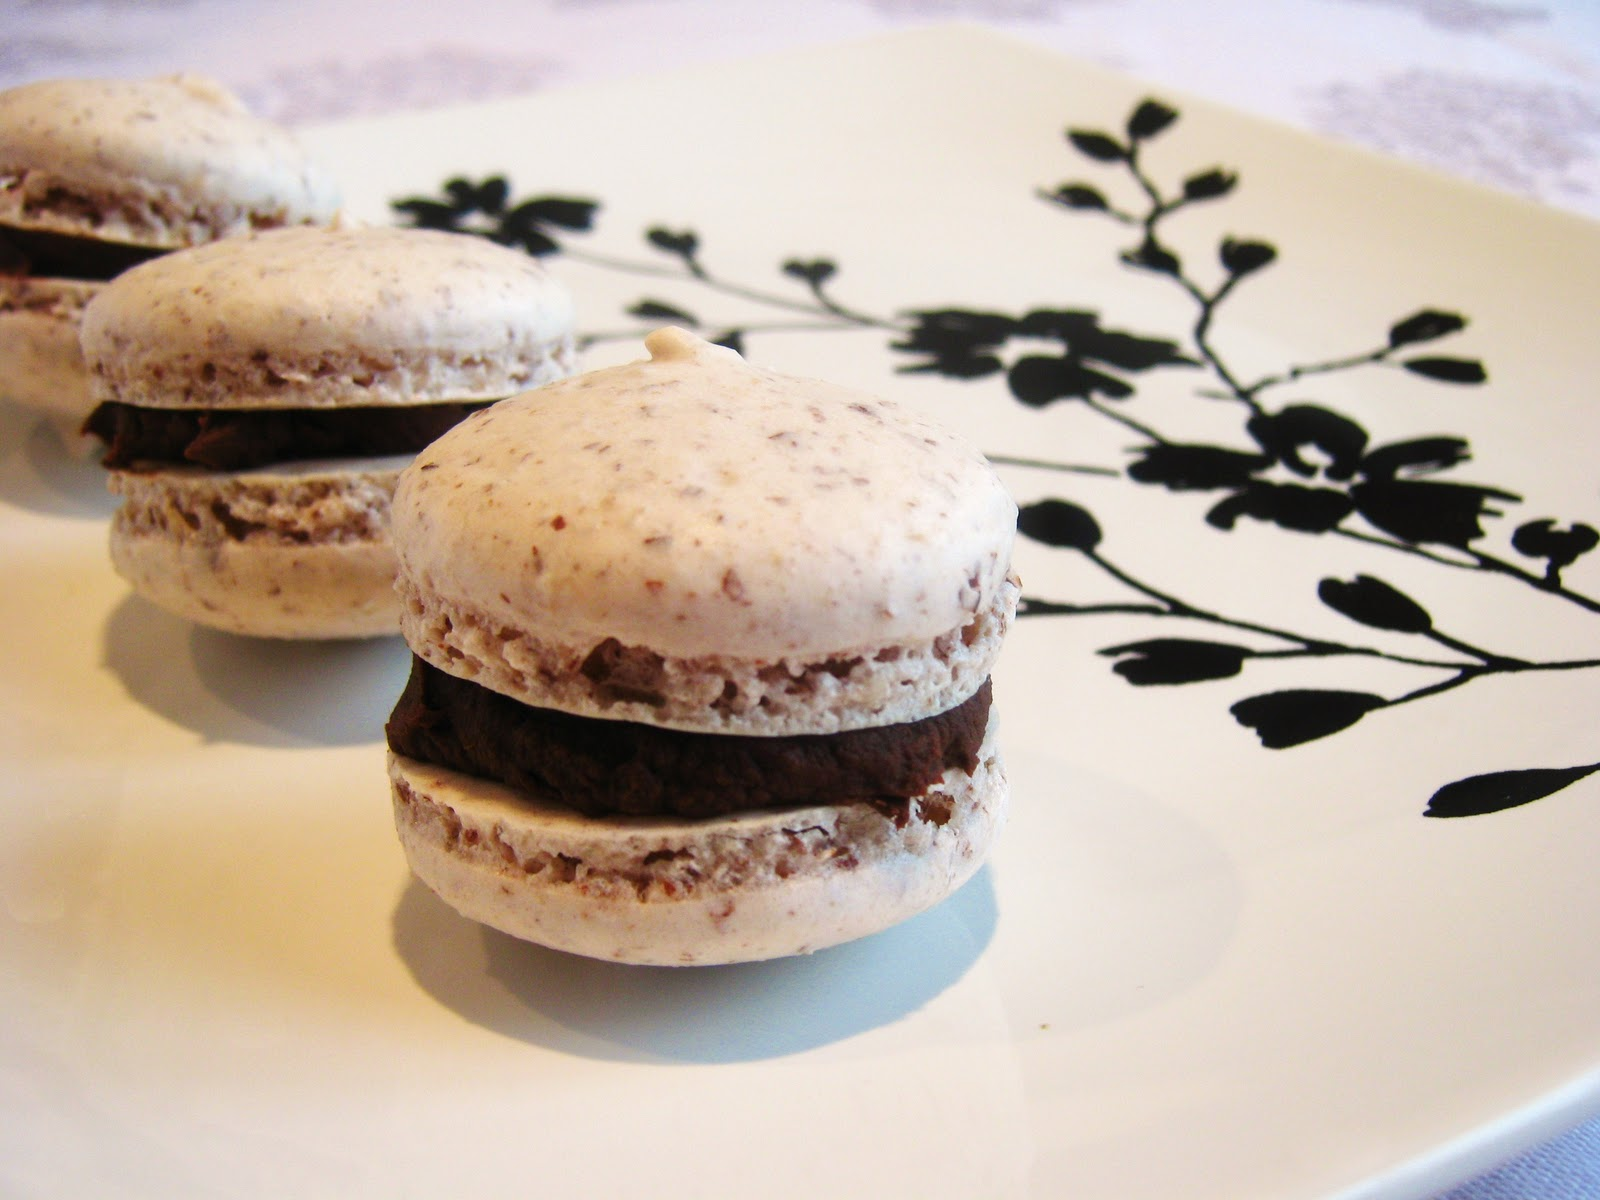 ... Mistaking: Raspberry Almond French Macaroons with Chocolate Ganache